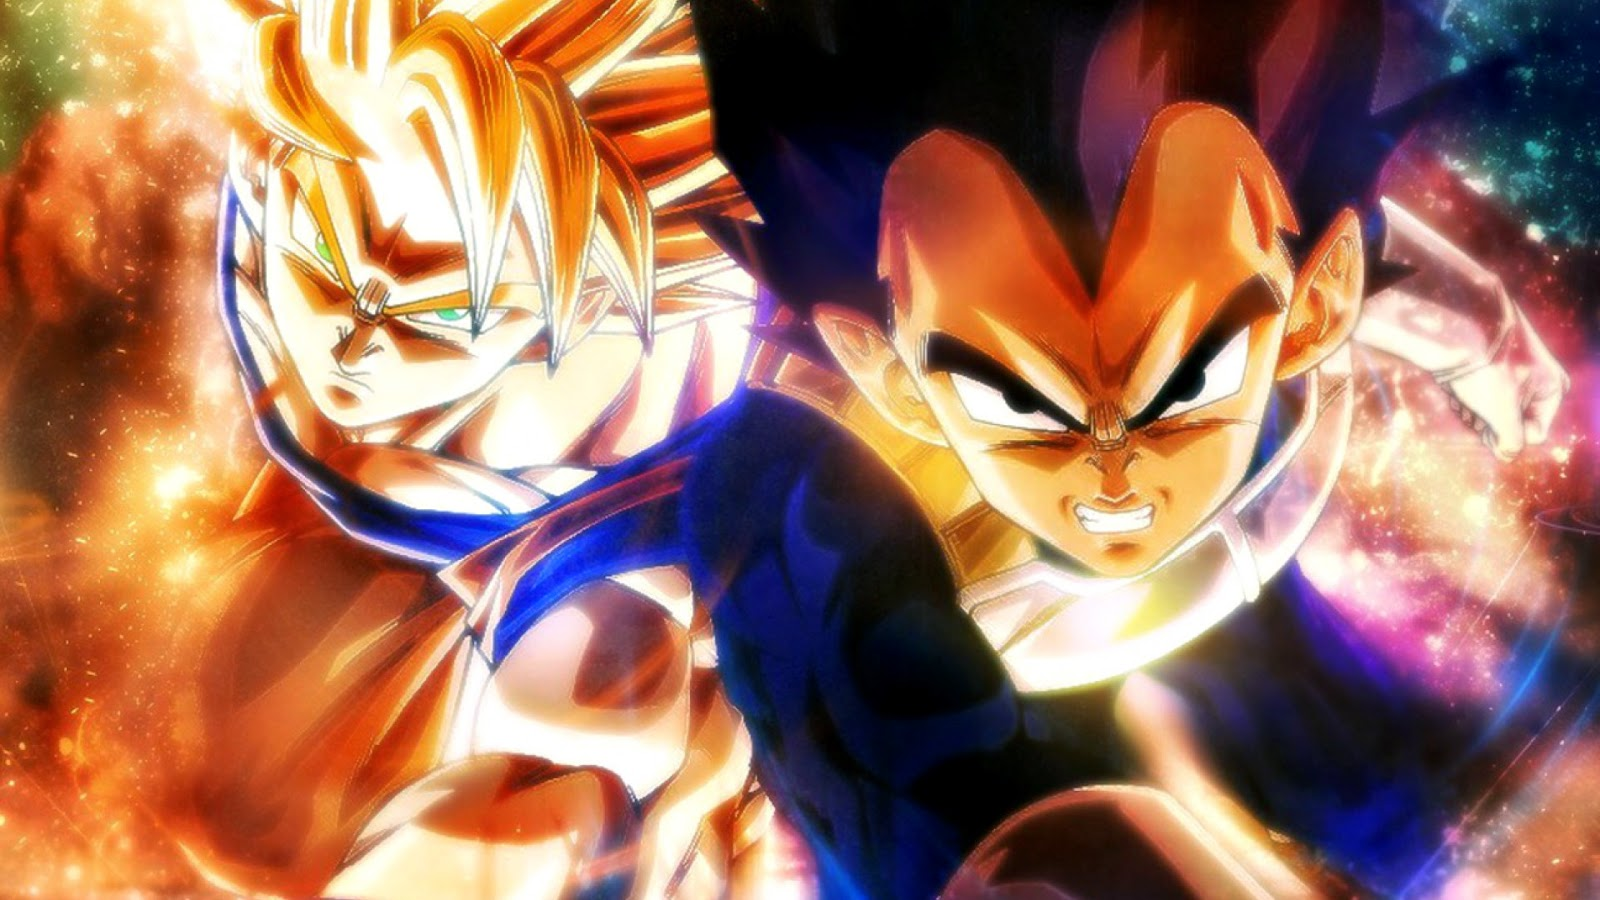 Dbz Wallpaper Goku Dragon Ball Super Wall...